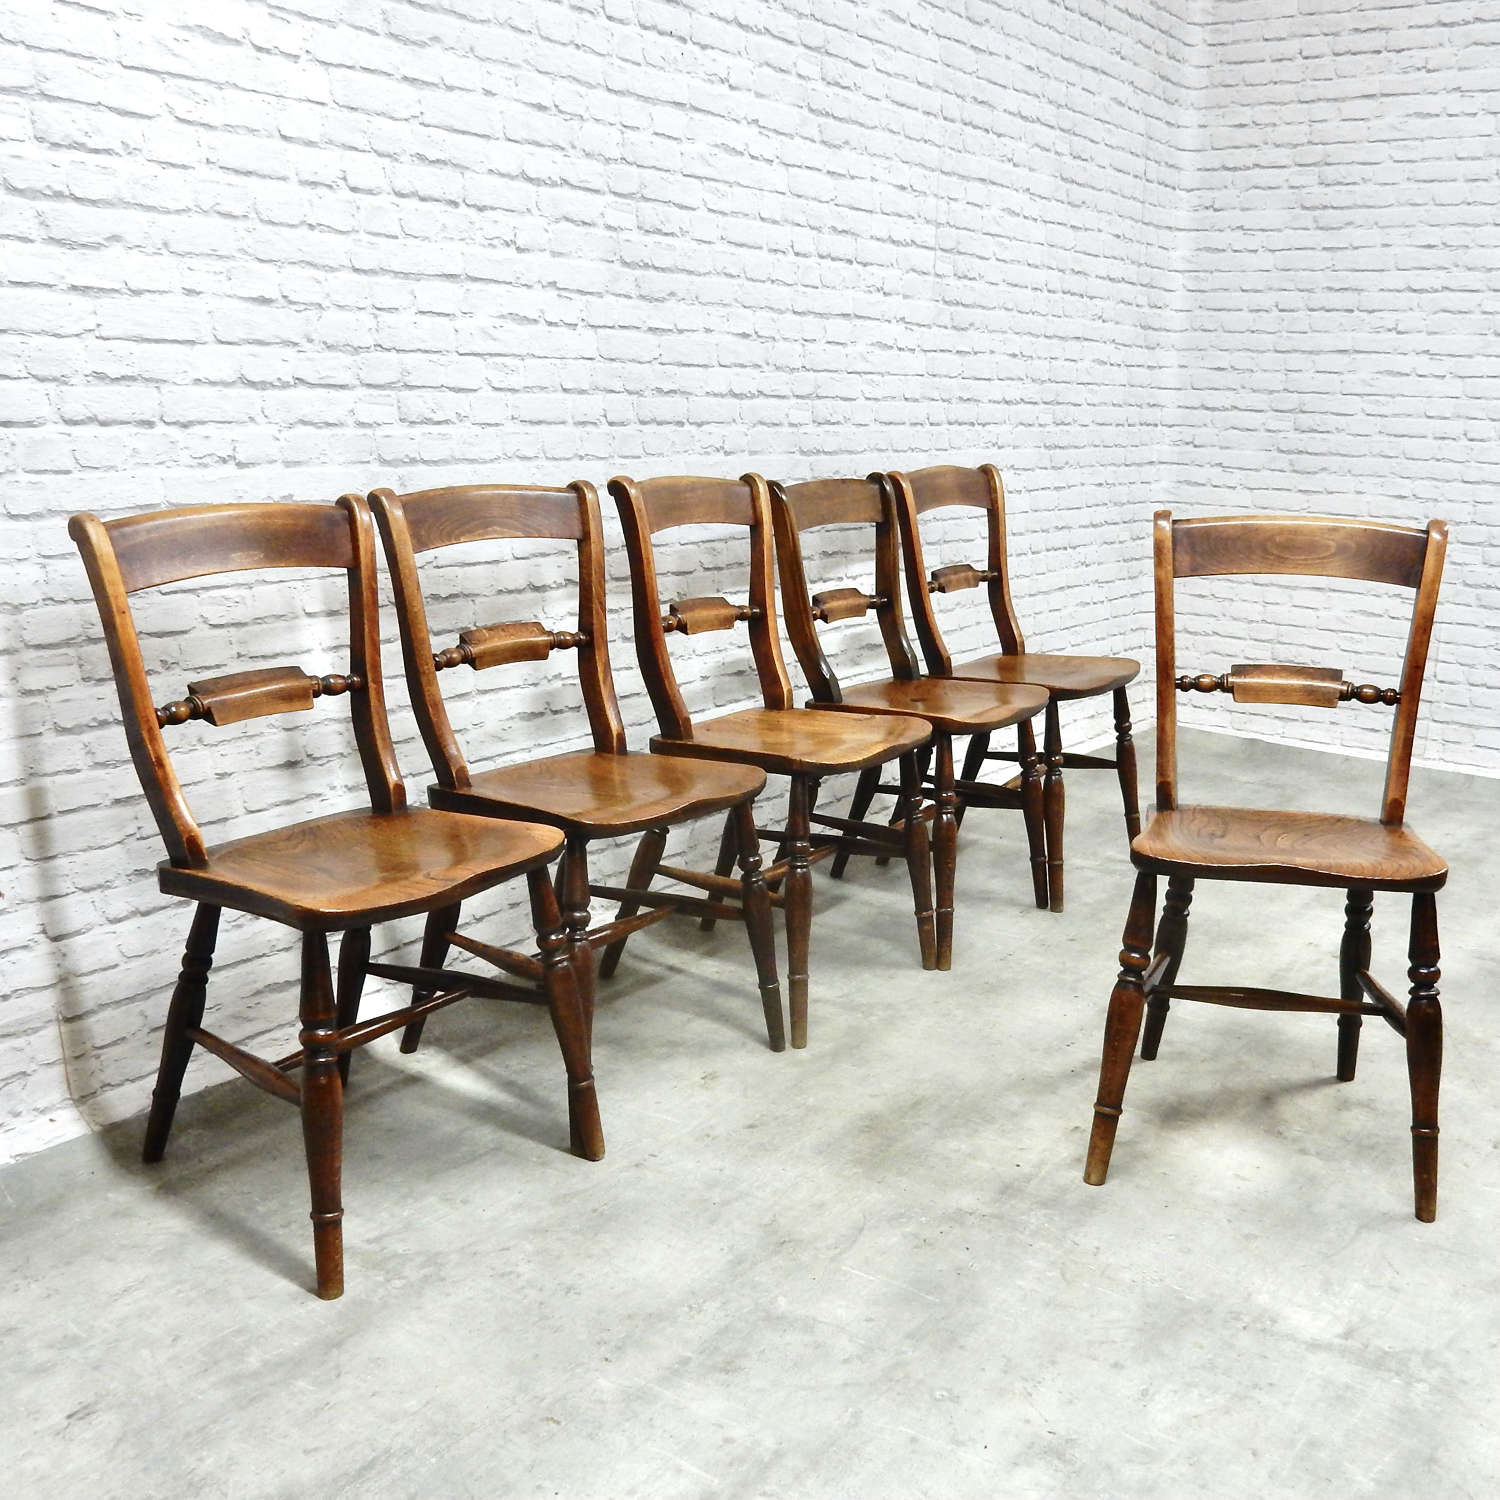 Named Oxford Windsor Kitchen Chairs